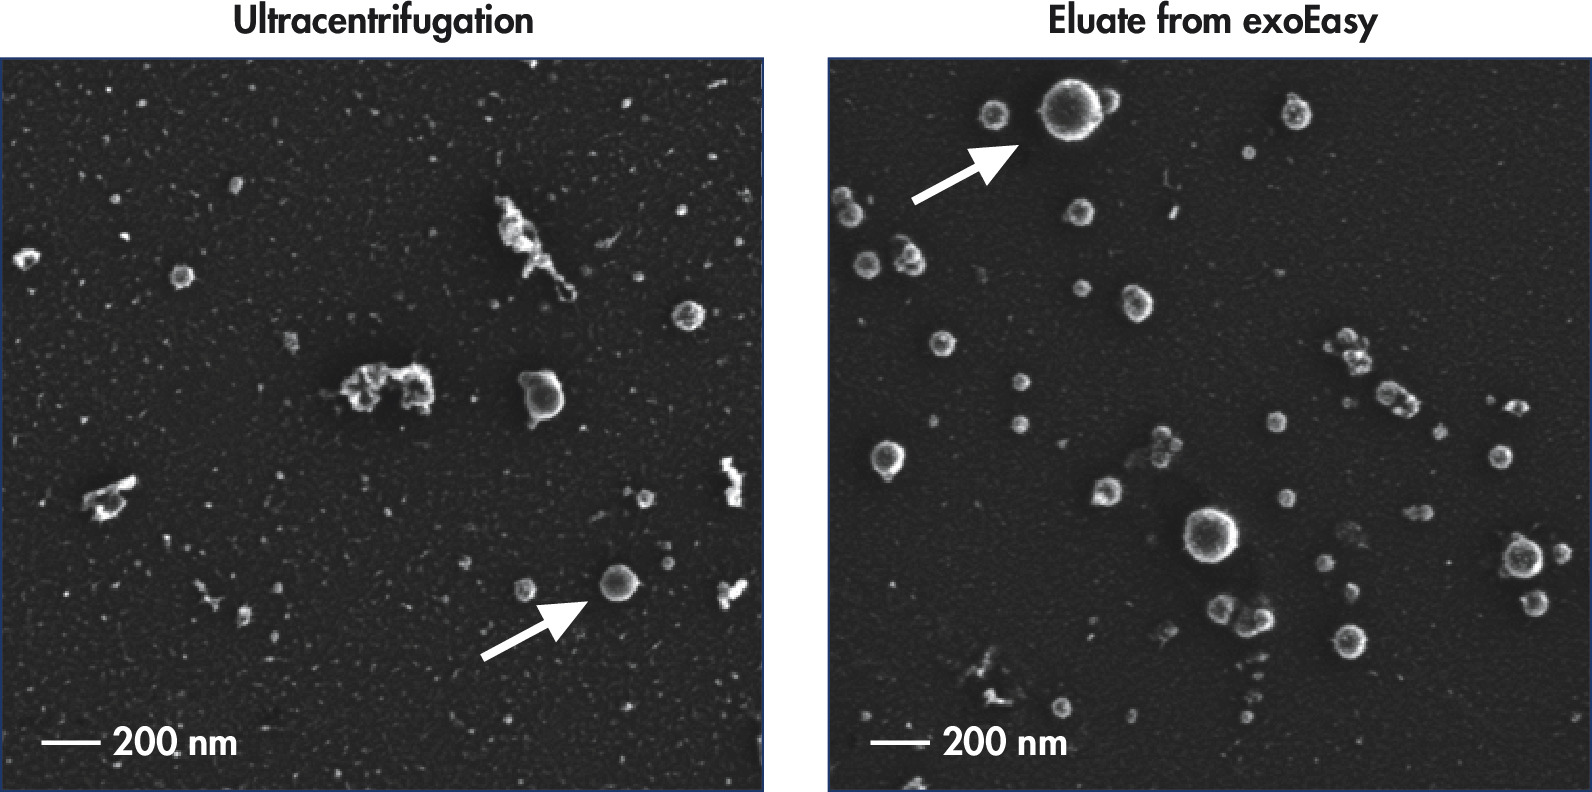 Intact vesicles are eluted from the exoEasy membrane with higher purity compared with ultracentrifugation.